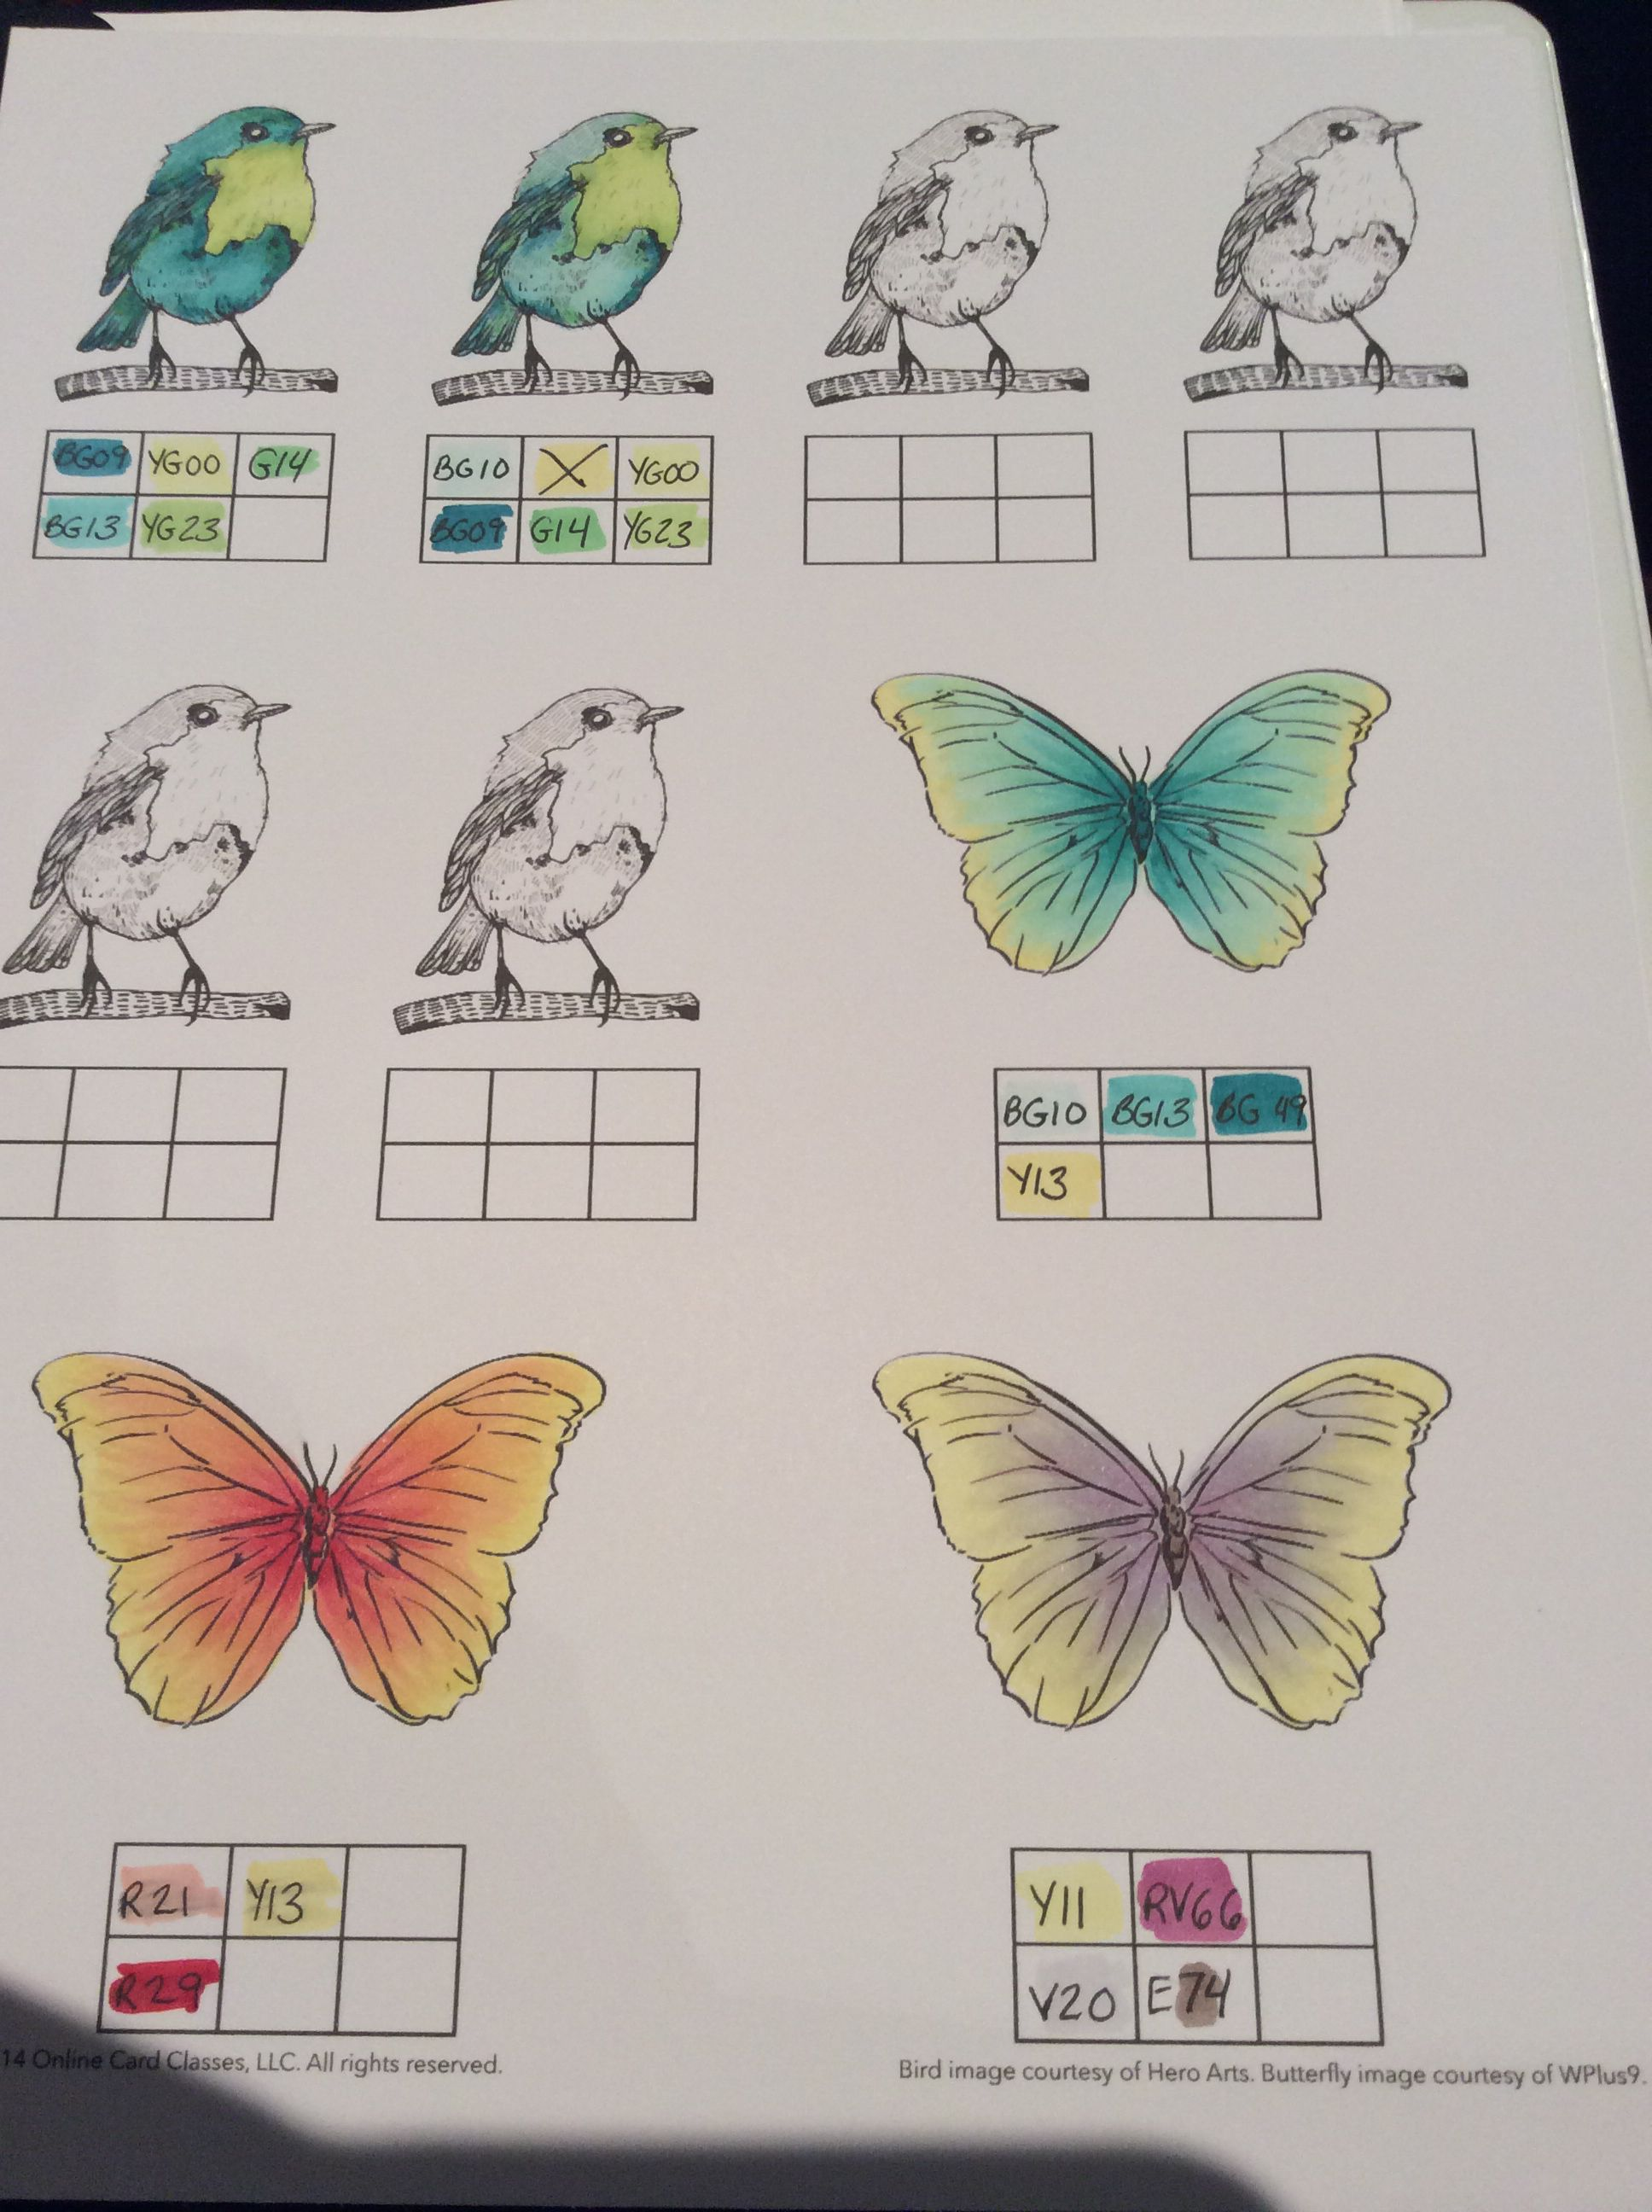 Copic Color Blending Ideas From An Online Copic Class